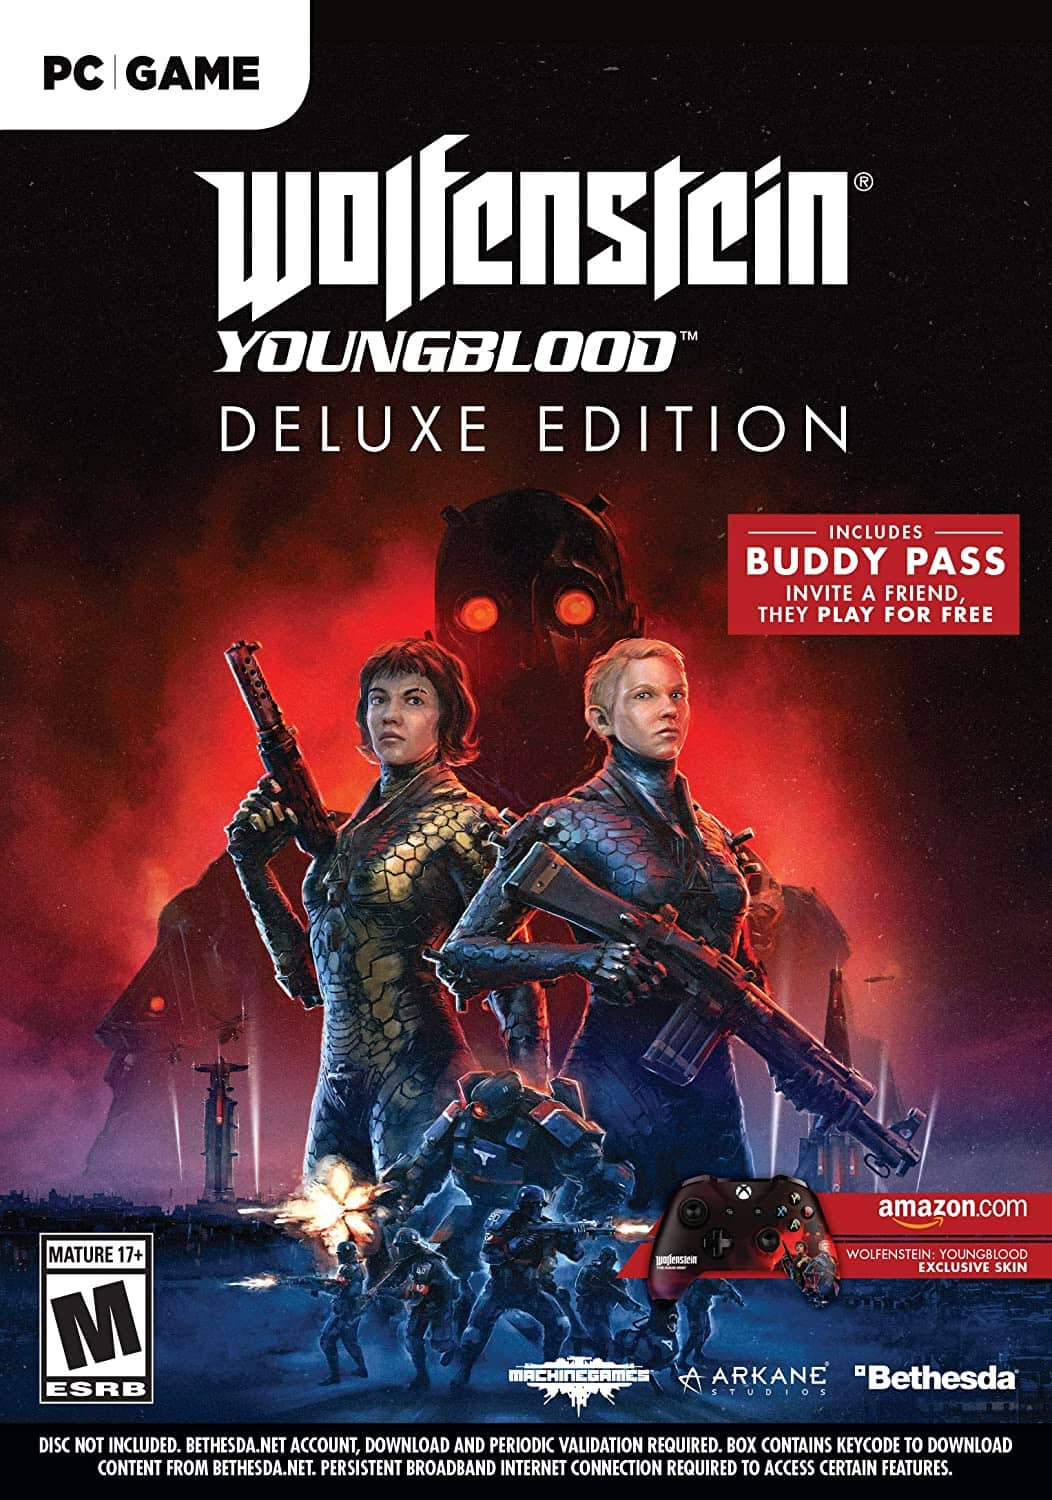 Wolfenstein Youngblood Deluxe Edition - (PC) - Amazon - $11.71